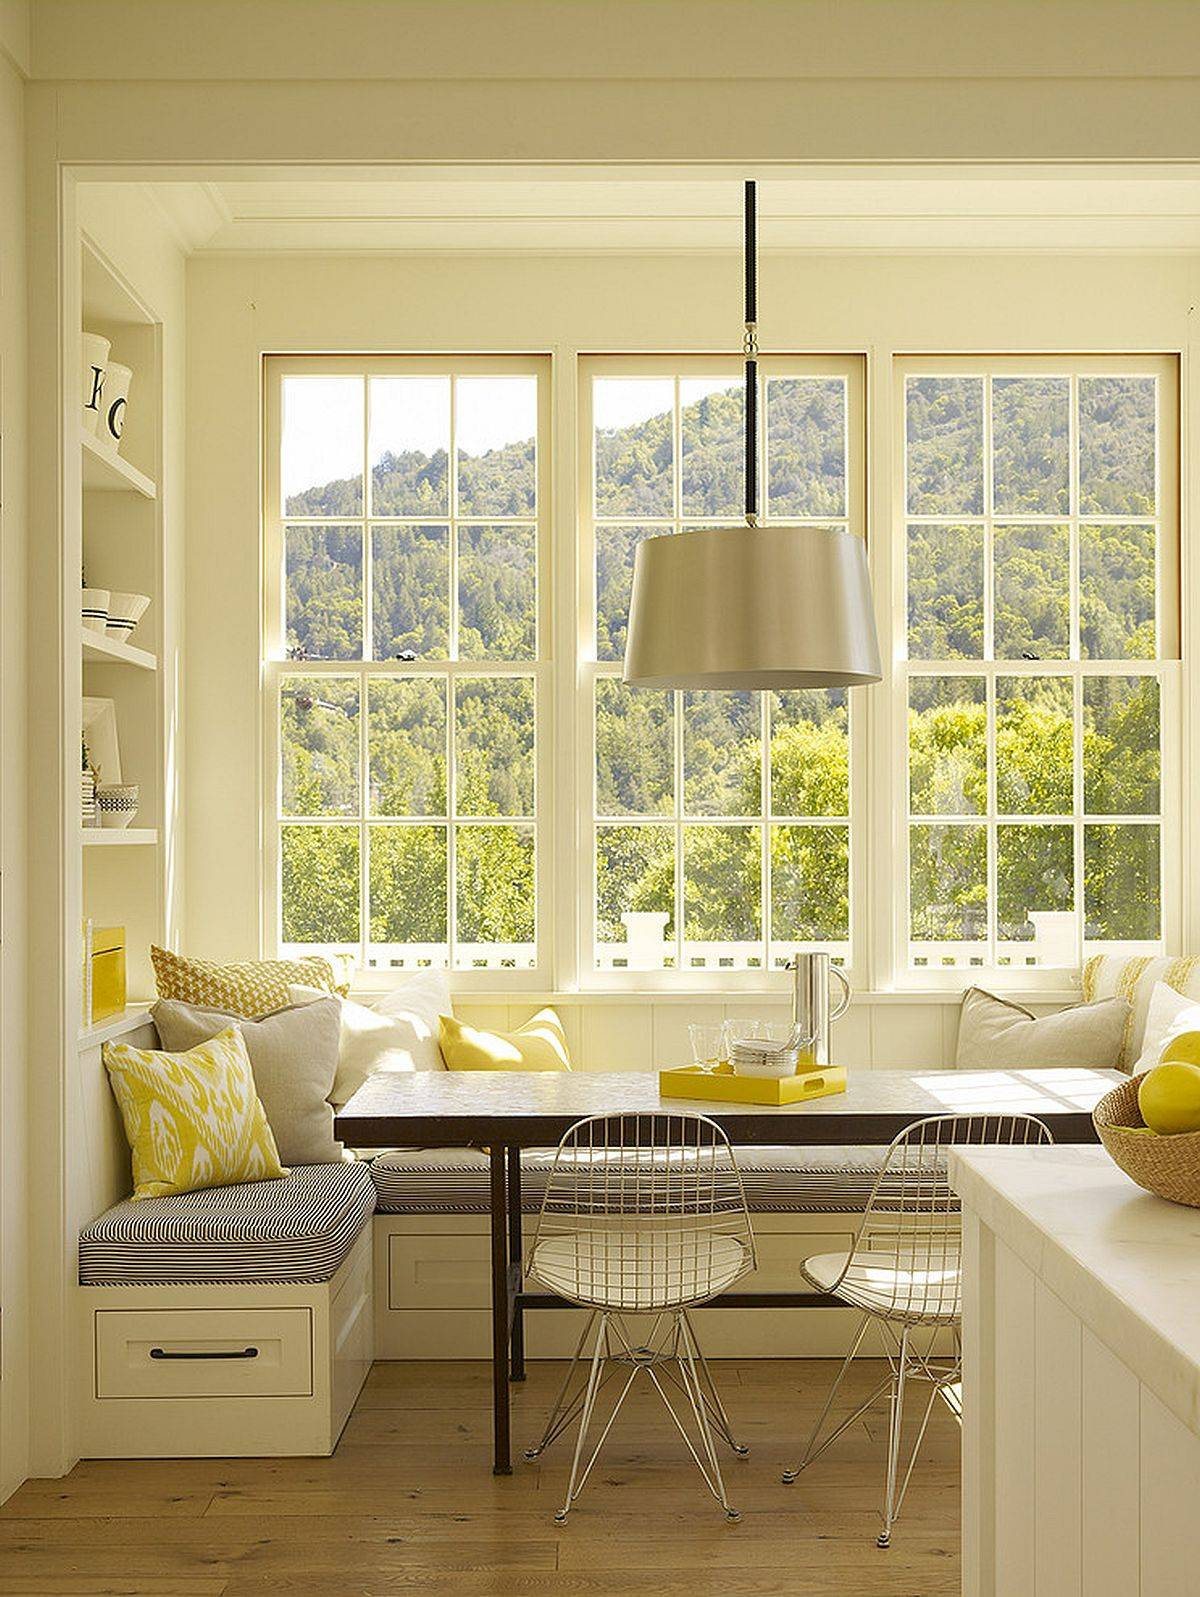 Cozy-and-beuatiful-bay-window-banquette-with-views-that-steal-the-spotlight-inside-this-eat-in-kitchen-66758